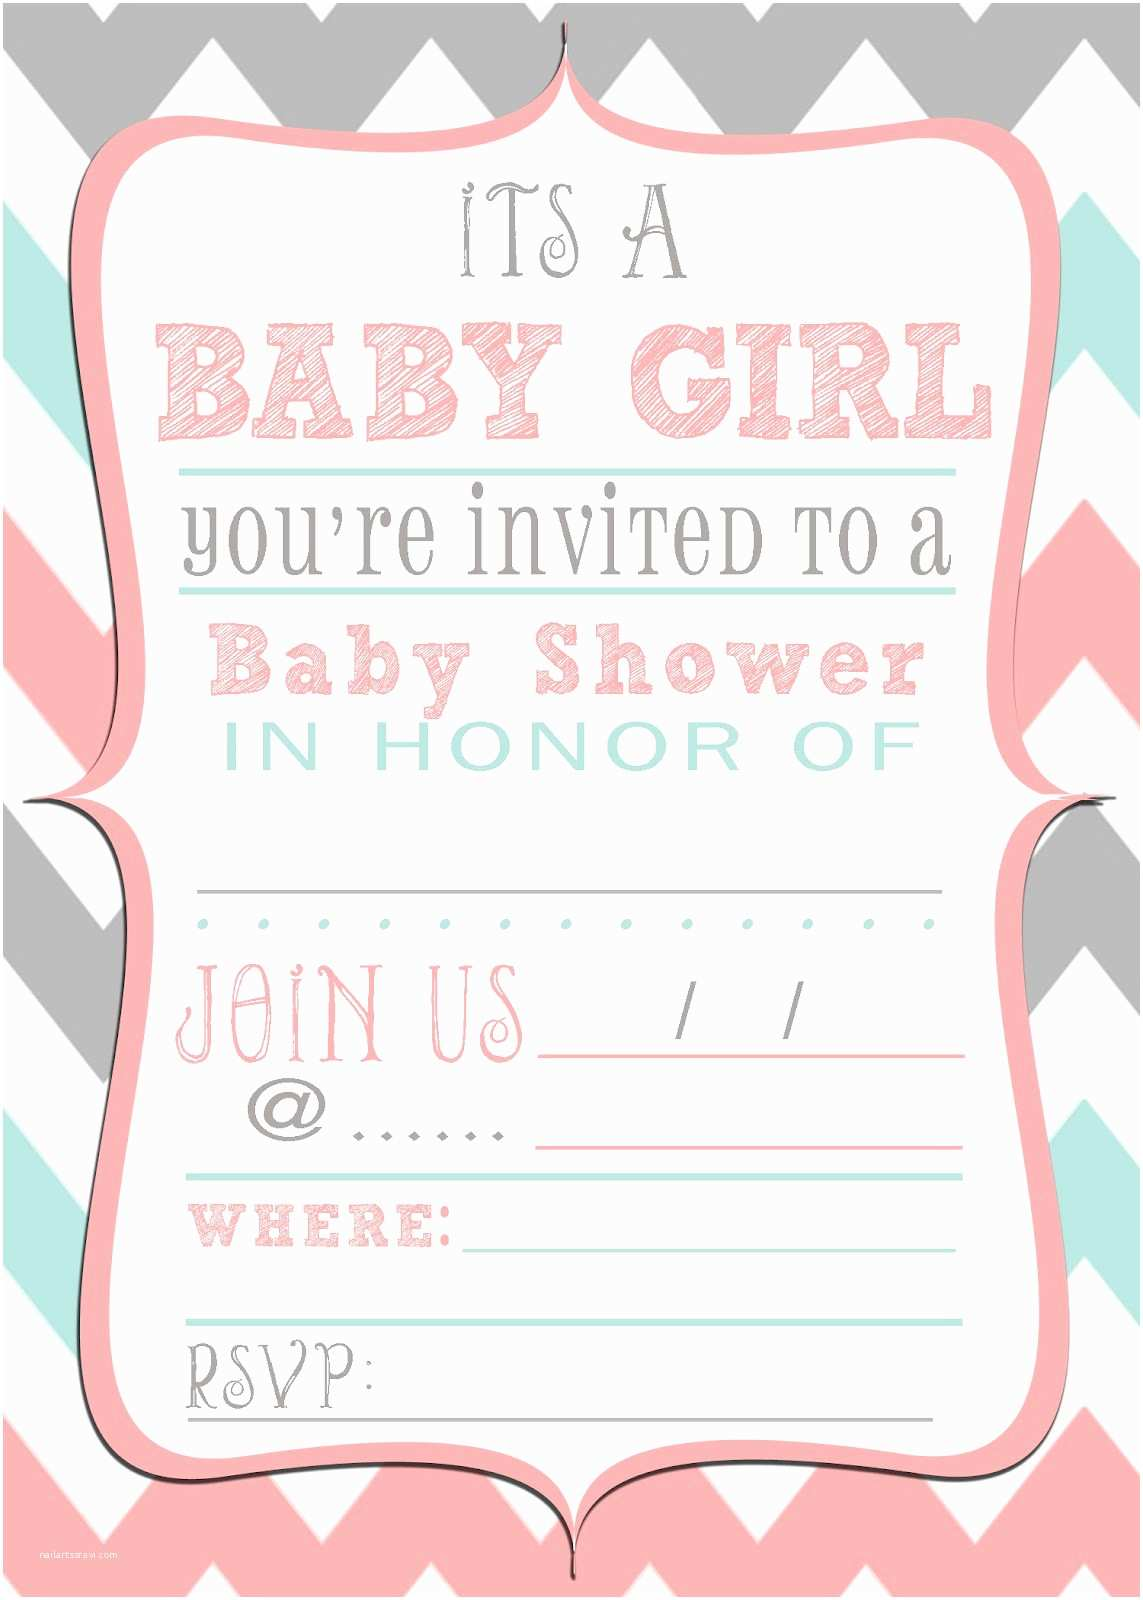 Baby Shower Invitations Free Mrs This And That Baby Shower Banner Free